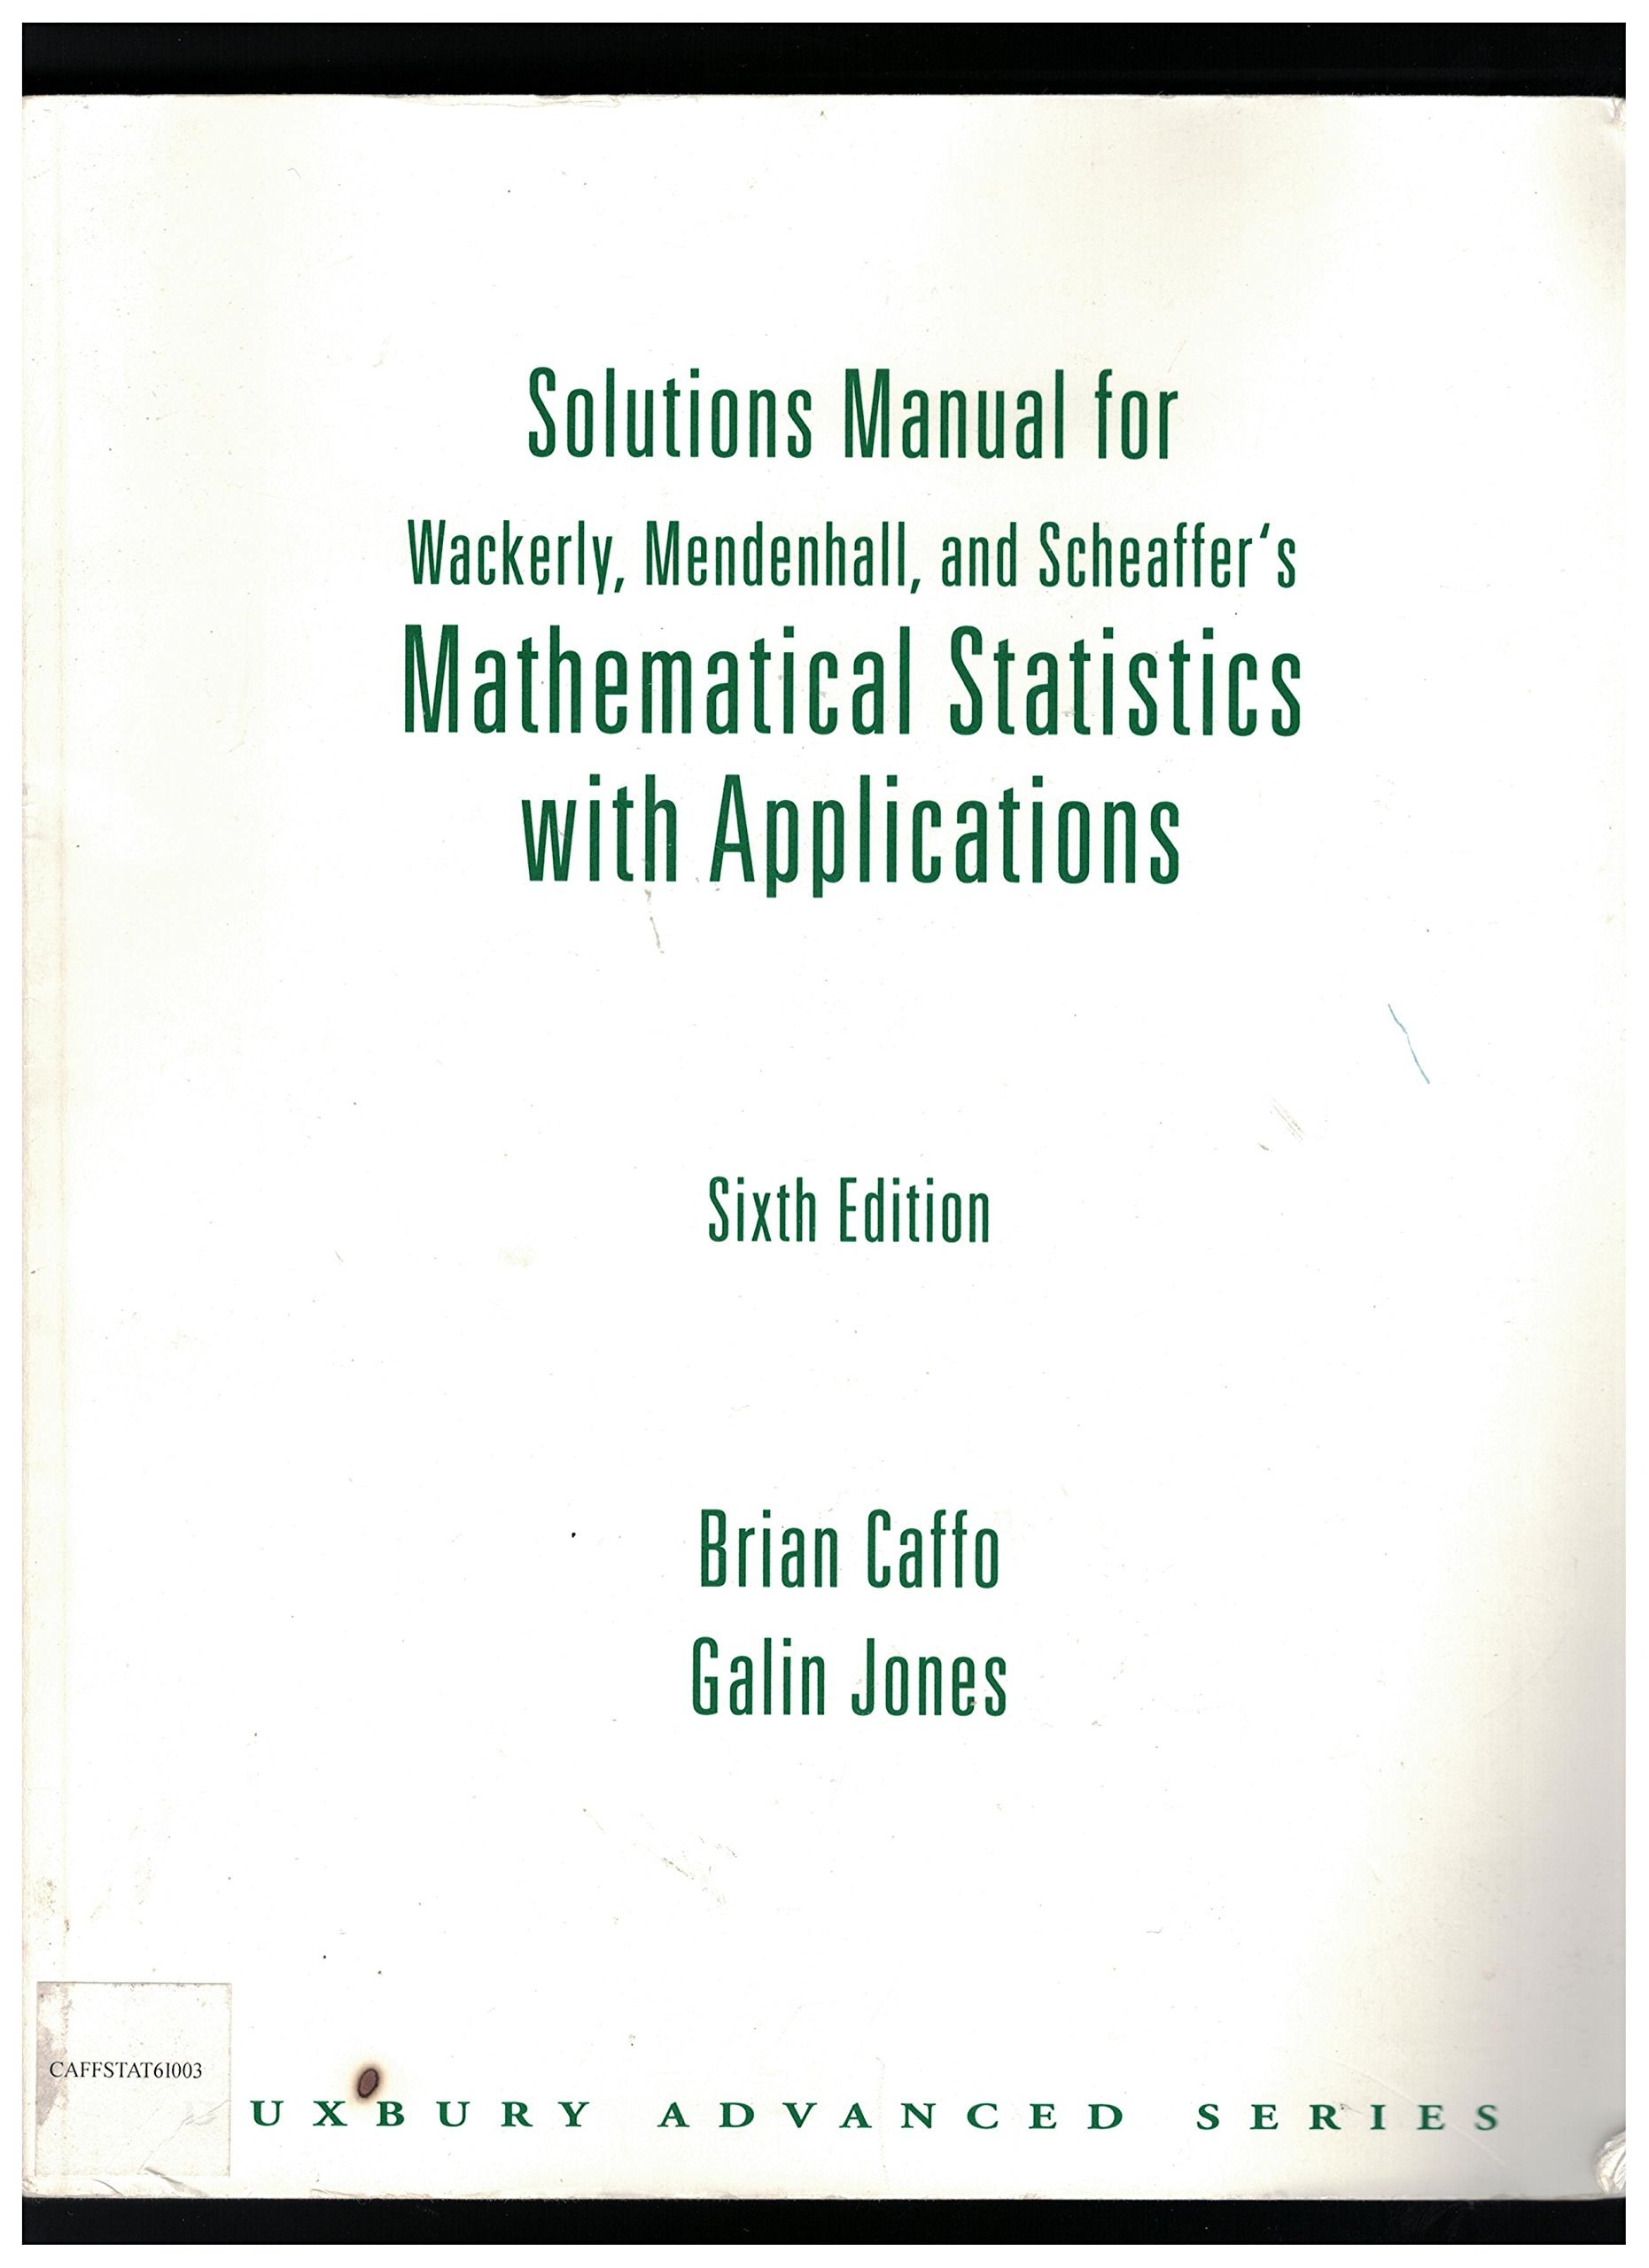 Solutions Manual for Wackerly, Mendenhall, and Scheaffer's Mathematical  Statistics with Applications: Amazon.com.mx: Libros